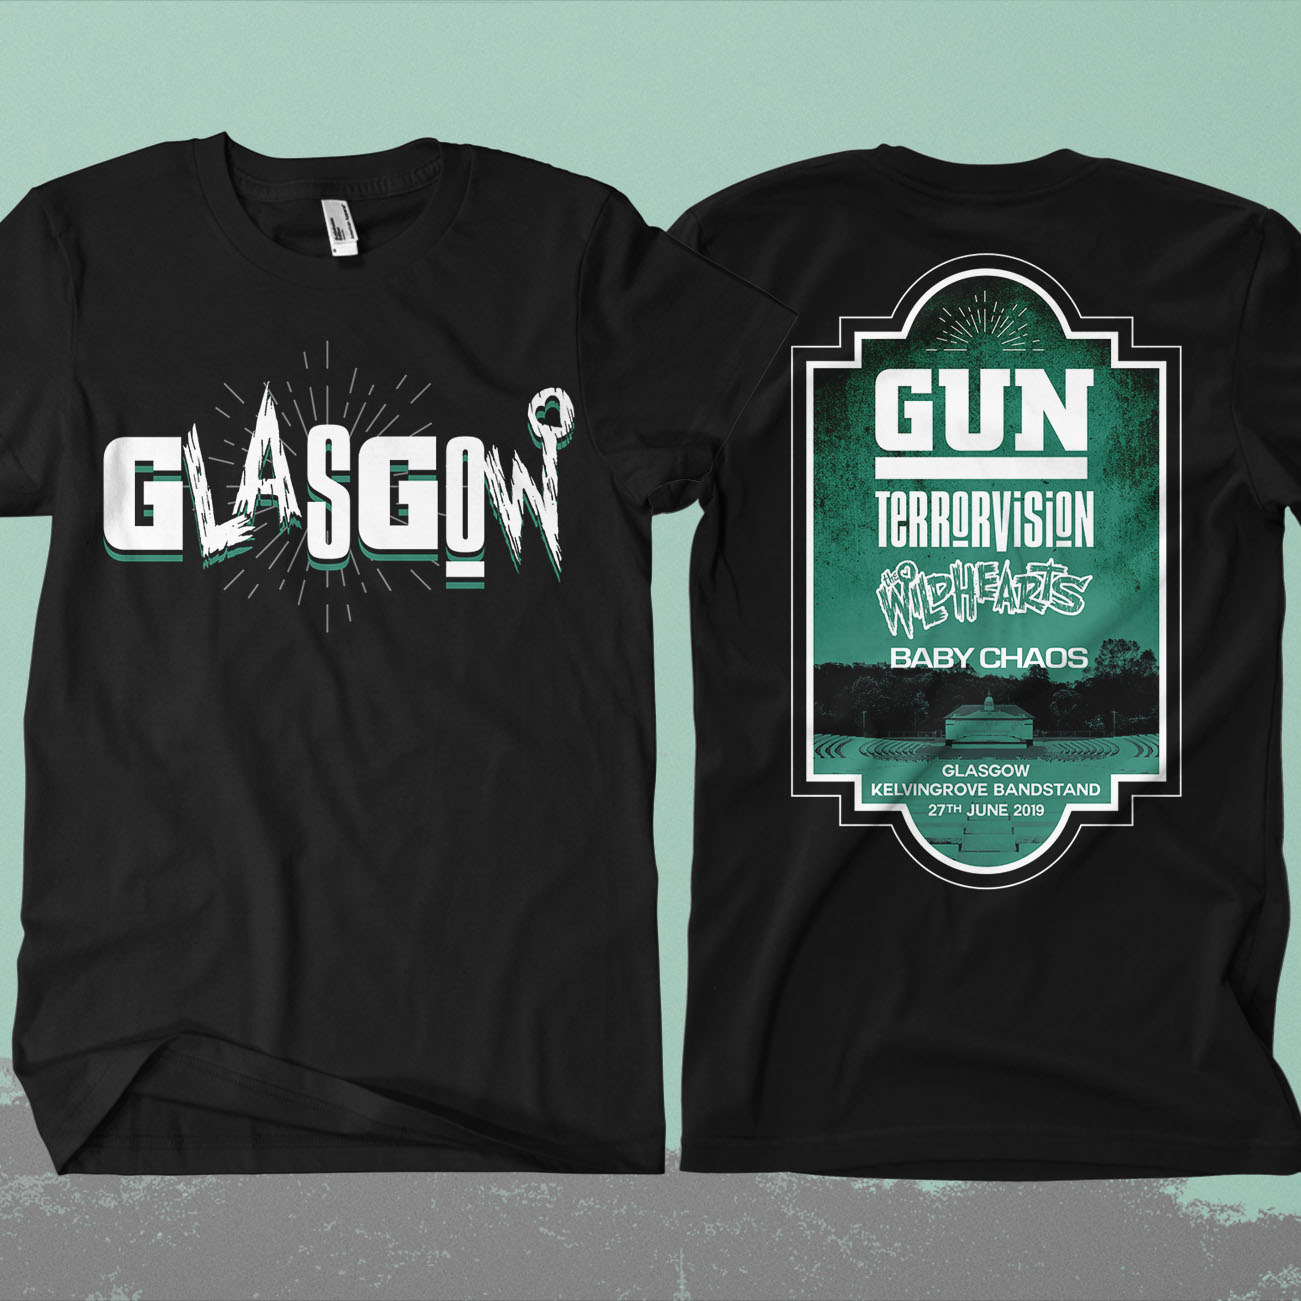 Glasgow Event Shirt Feat. Gun / Terrorvision / The Wildhearts / Baby Chaos - Omerch